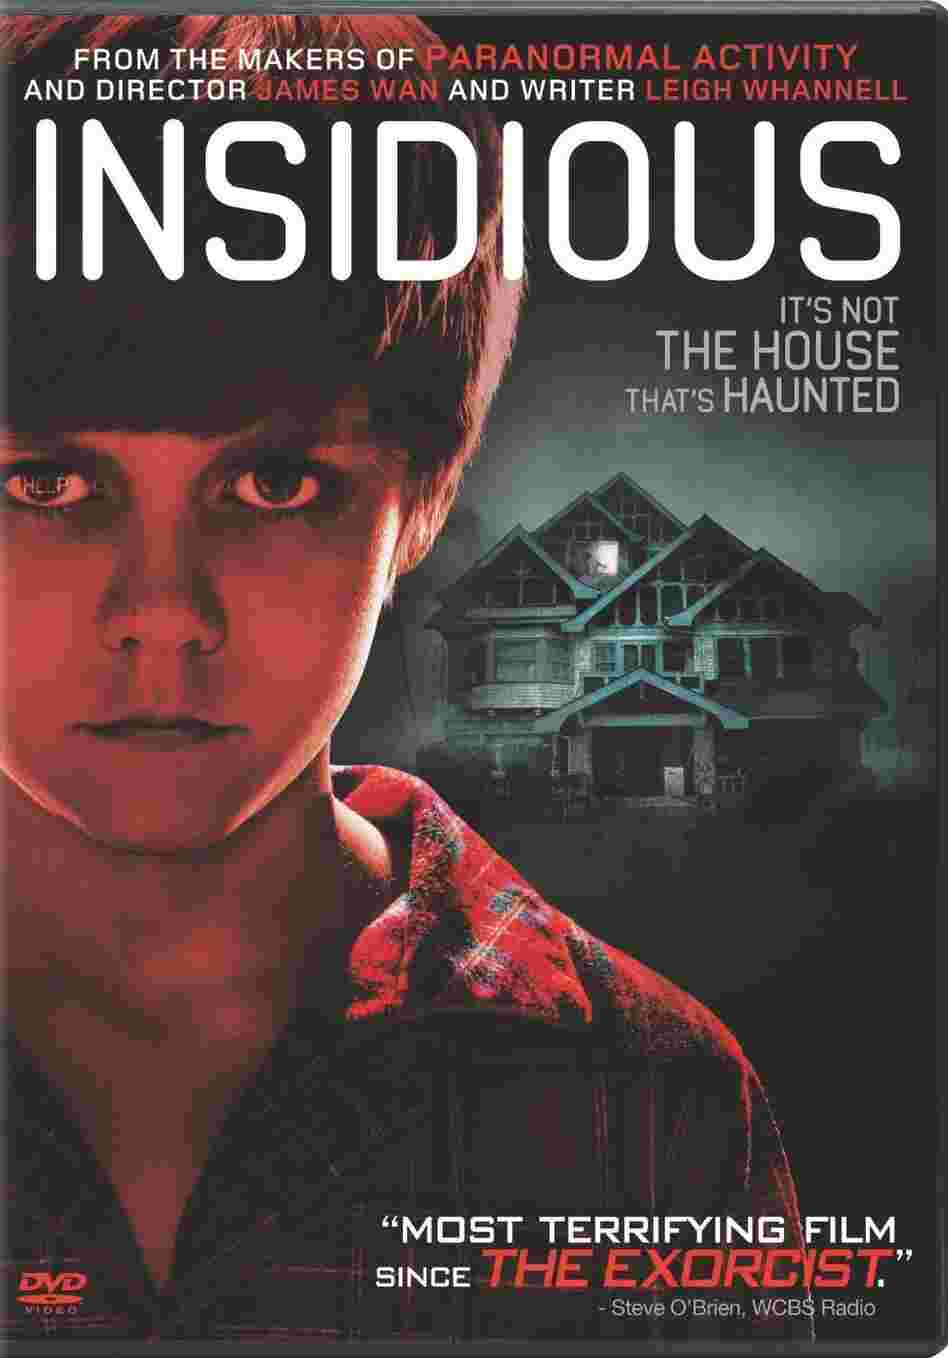 The cover of Insidious